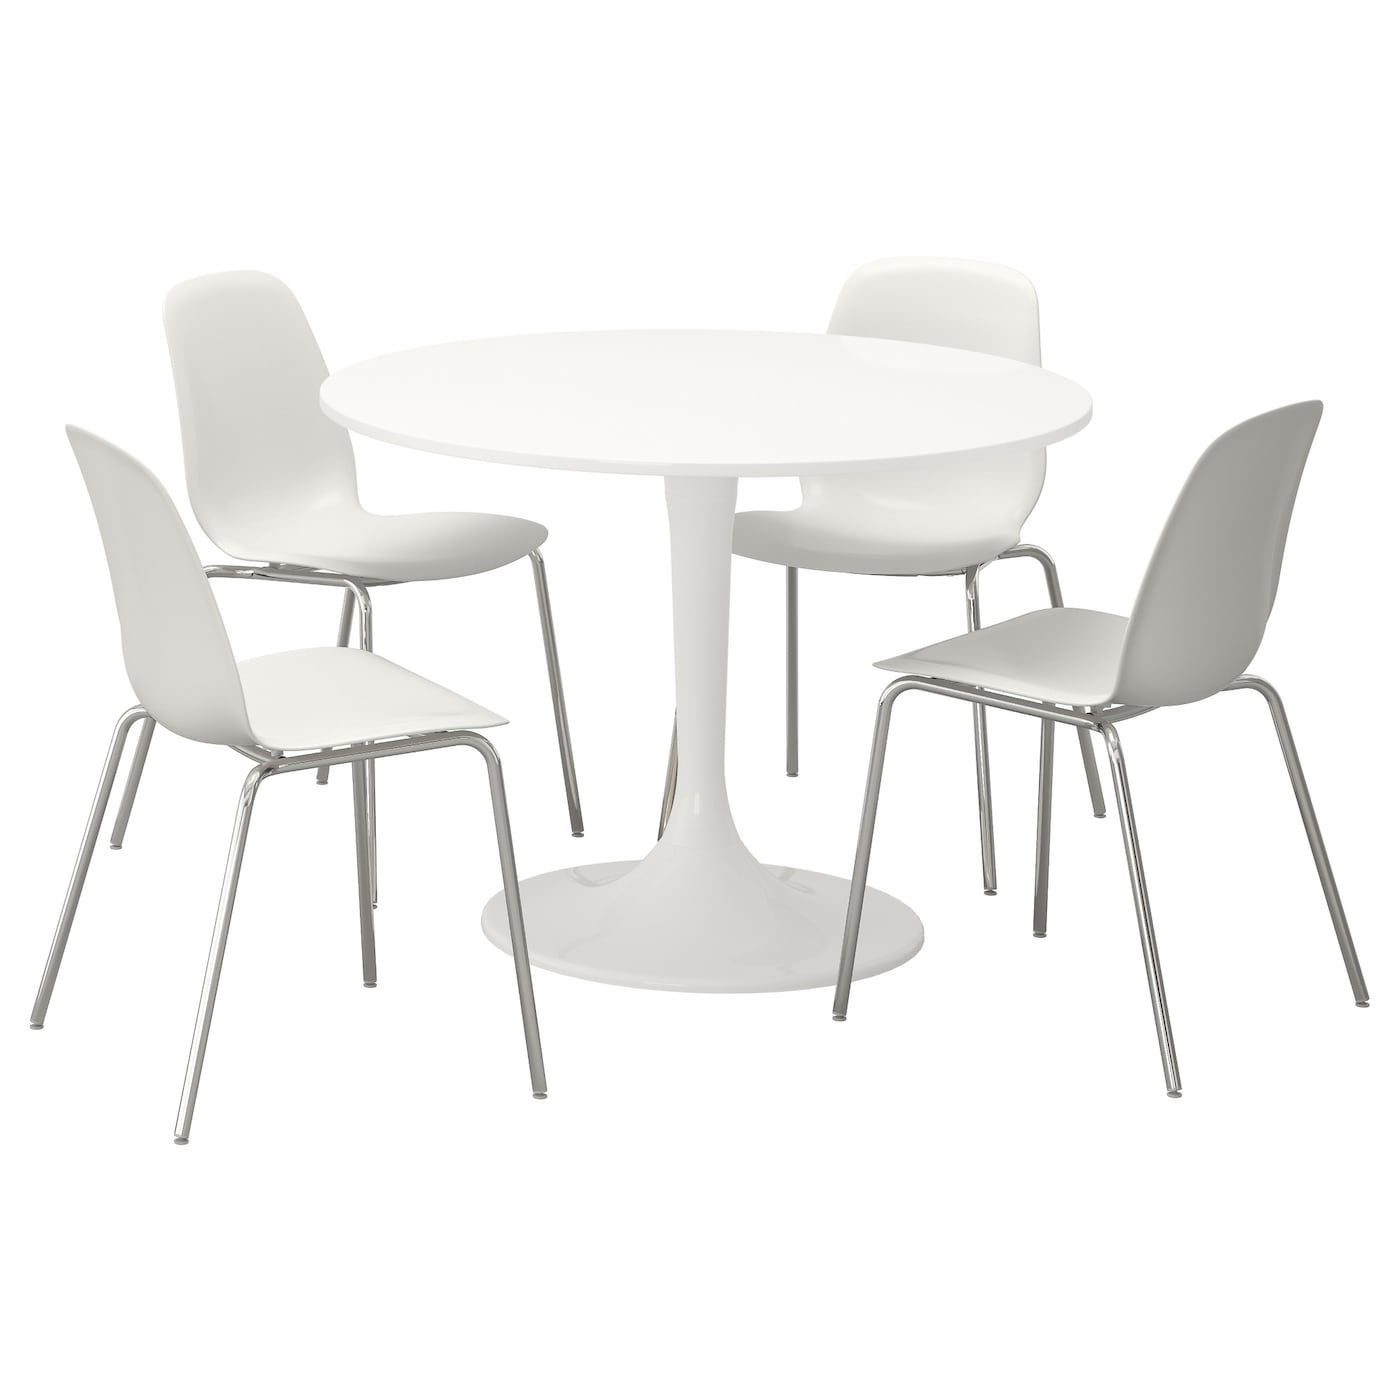 Low Dining Room Tables Docksta Leifarne Table And 4 Chairs White White 105 Cm Ikea